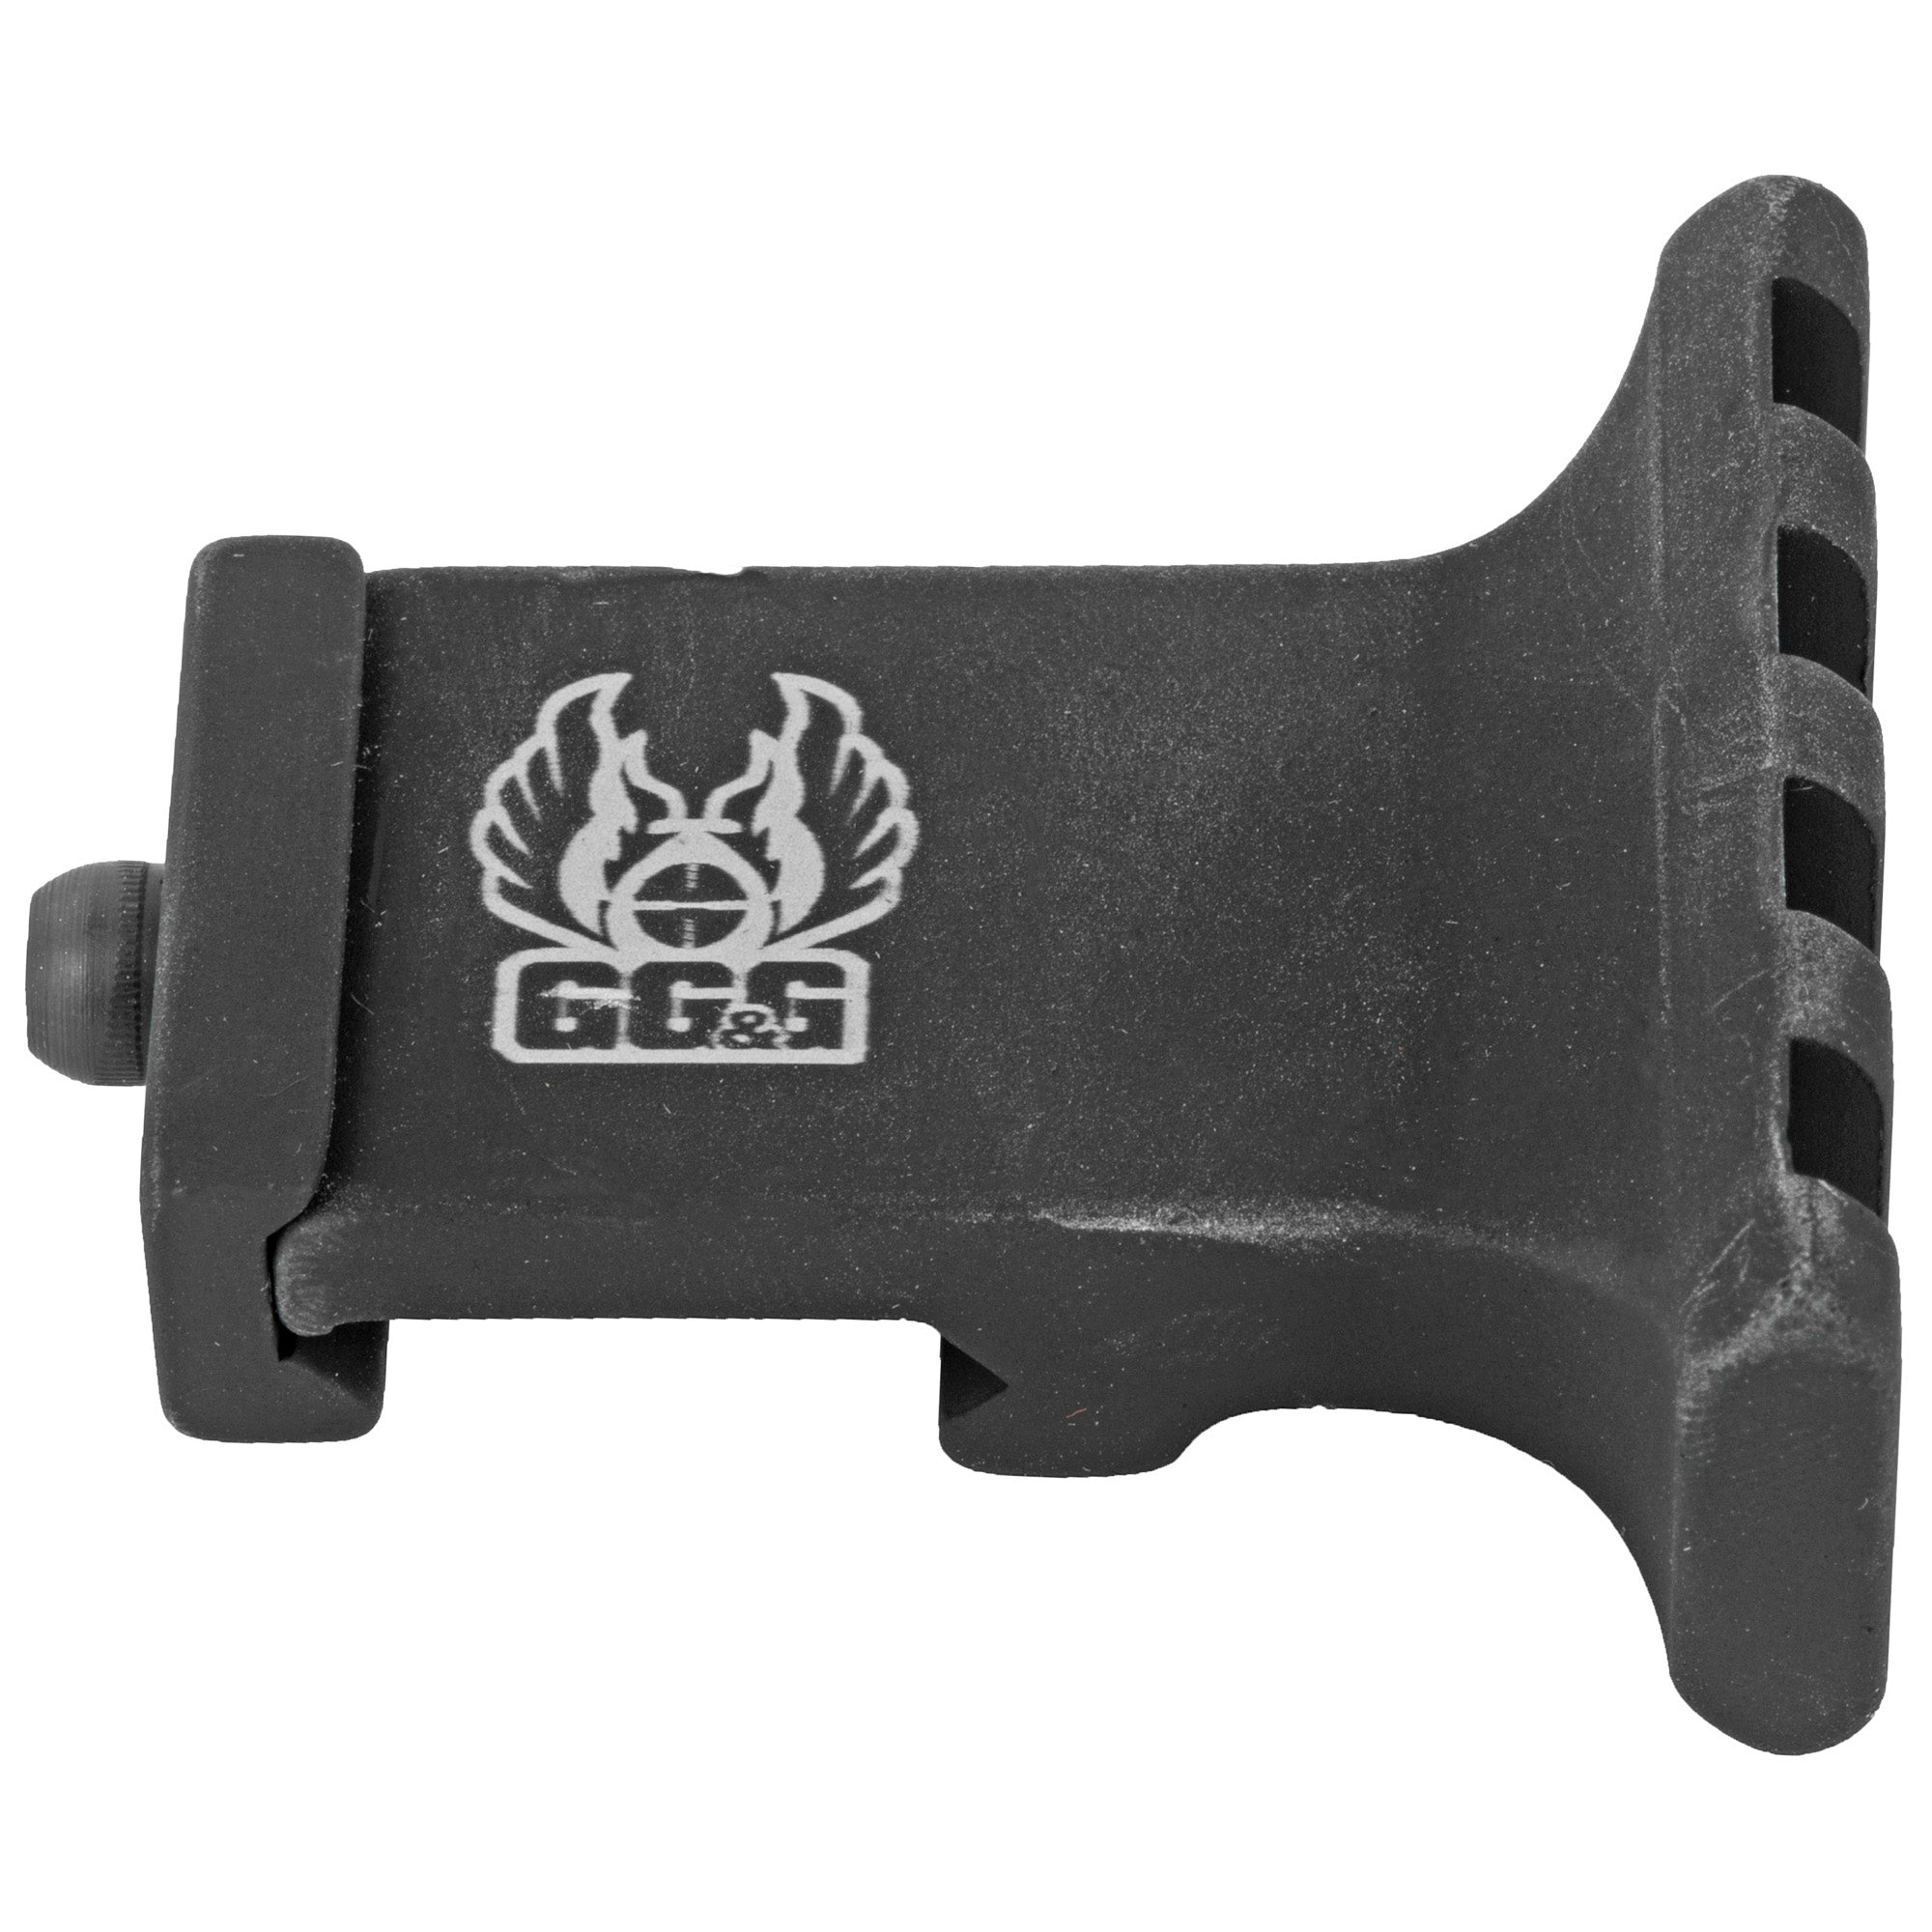 GG&G Offset Flashlight Mount